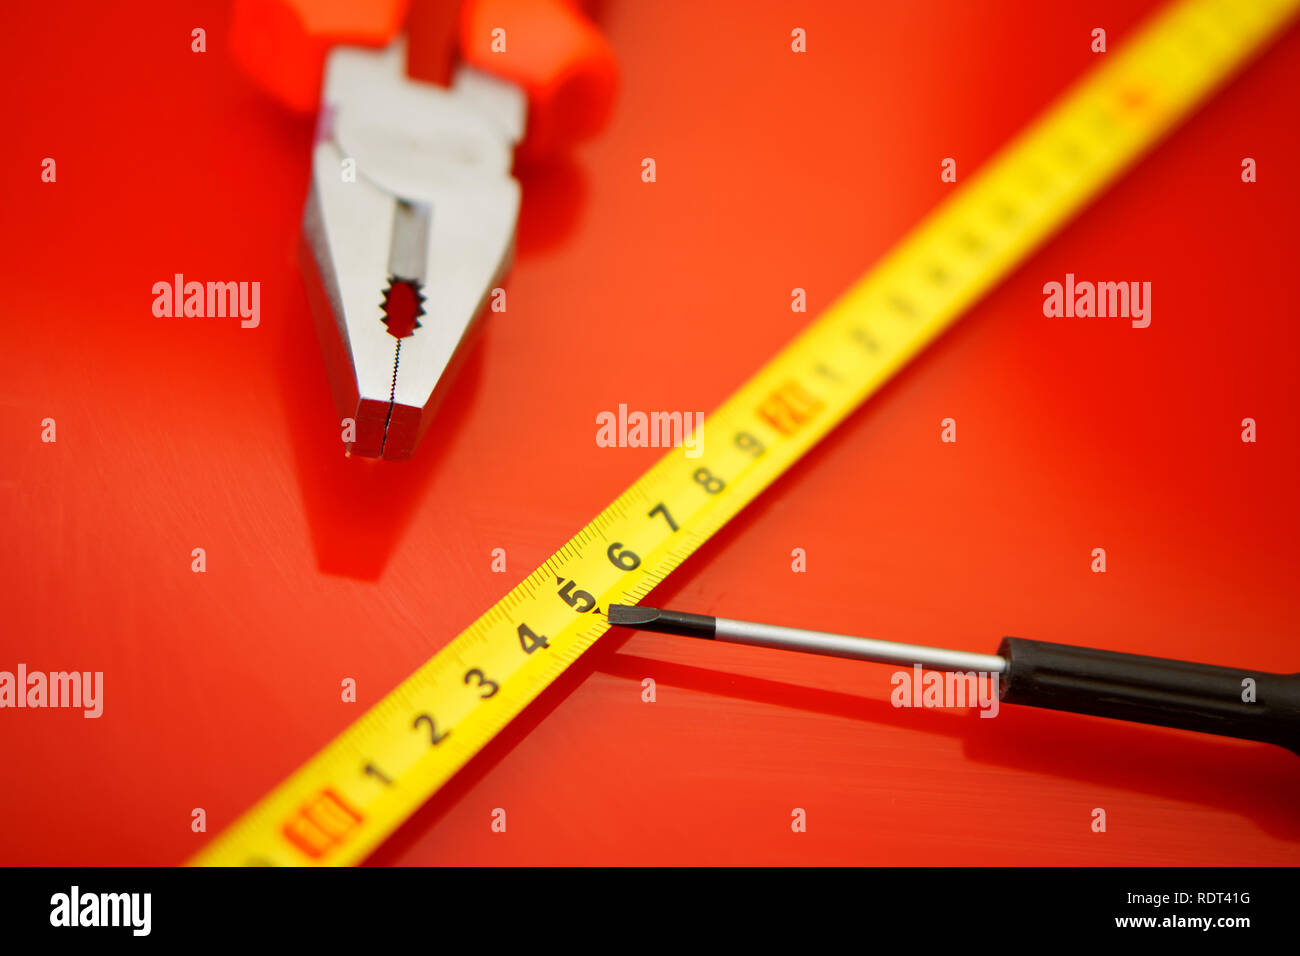 A tape measure, a screwdriver-tap and pliers lie on a red polished surface in a car repair shop. Performance of work. Stock Photo